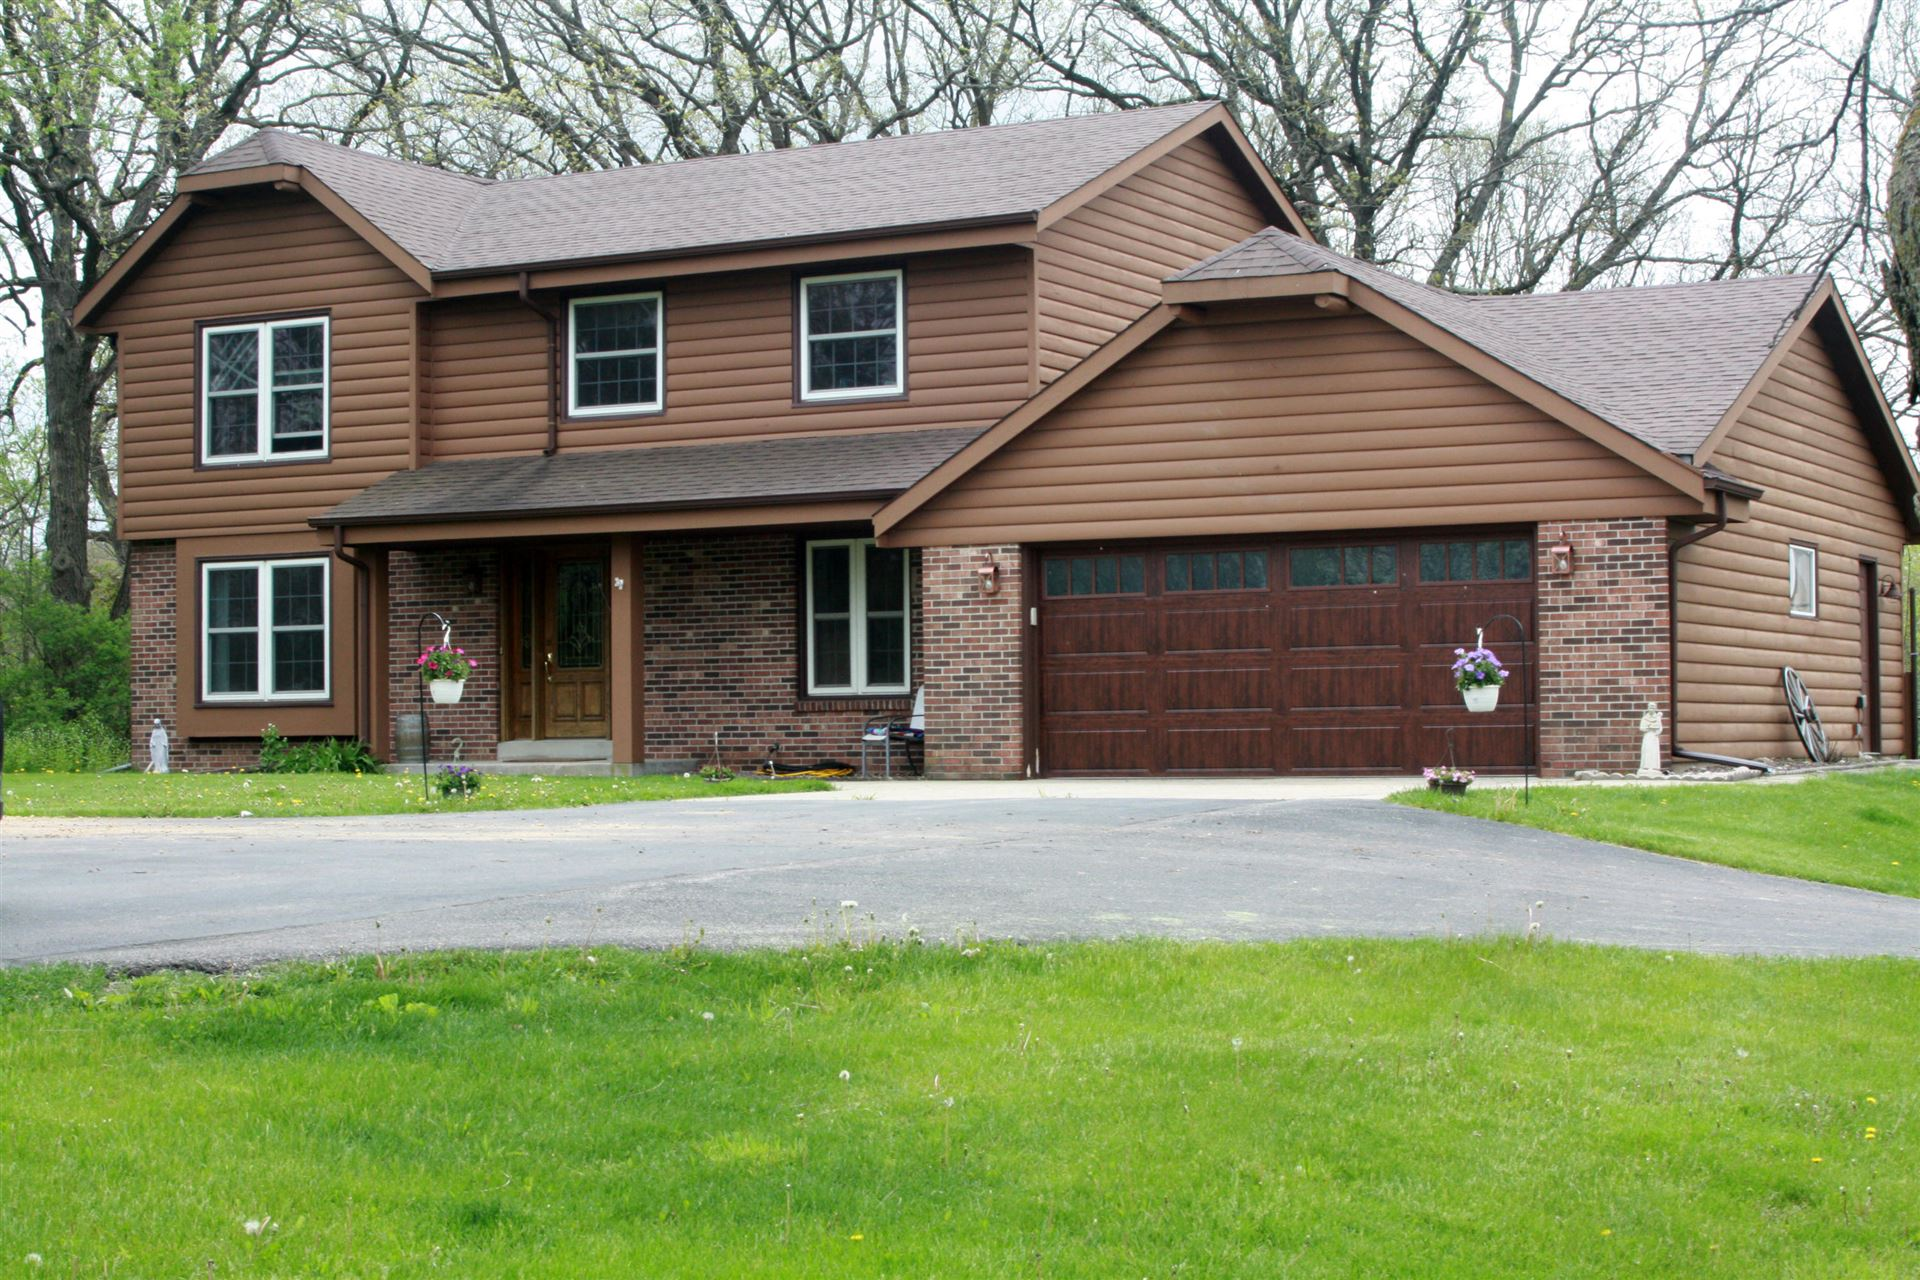 S29W31247 Sunset Dr, Genesee, WI 53189 - #: 1685137